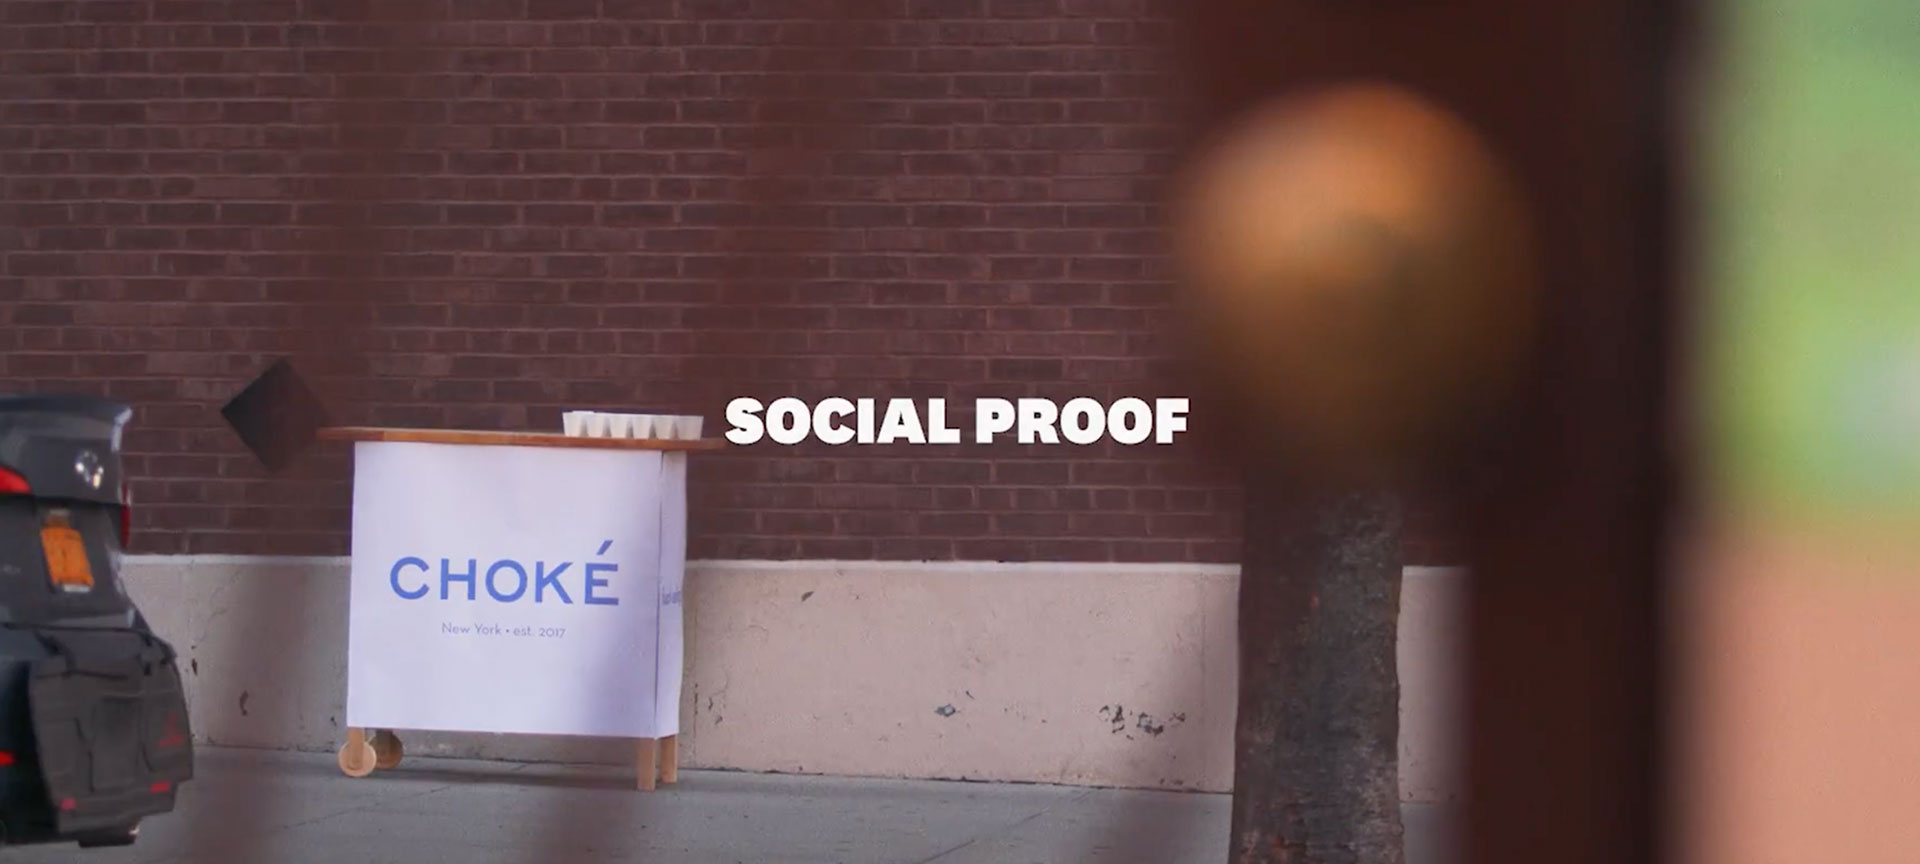 Social Proof, the film